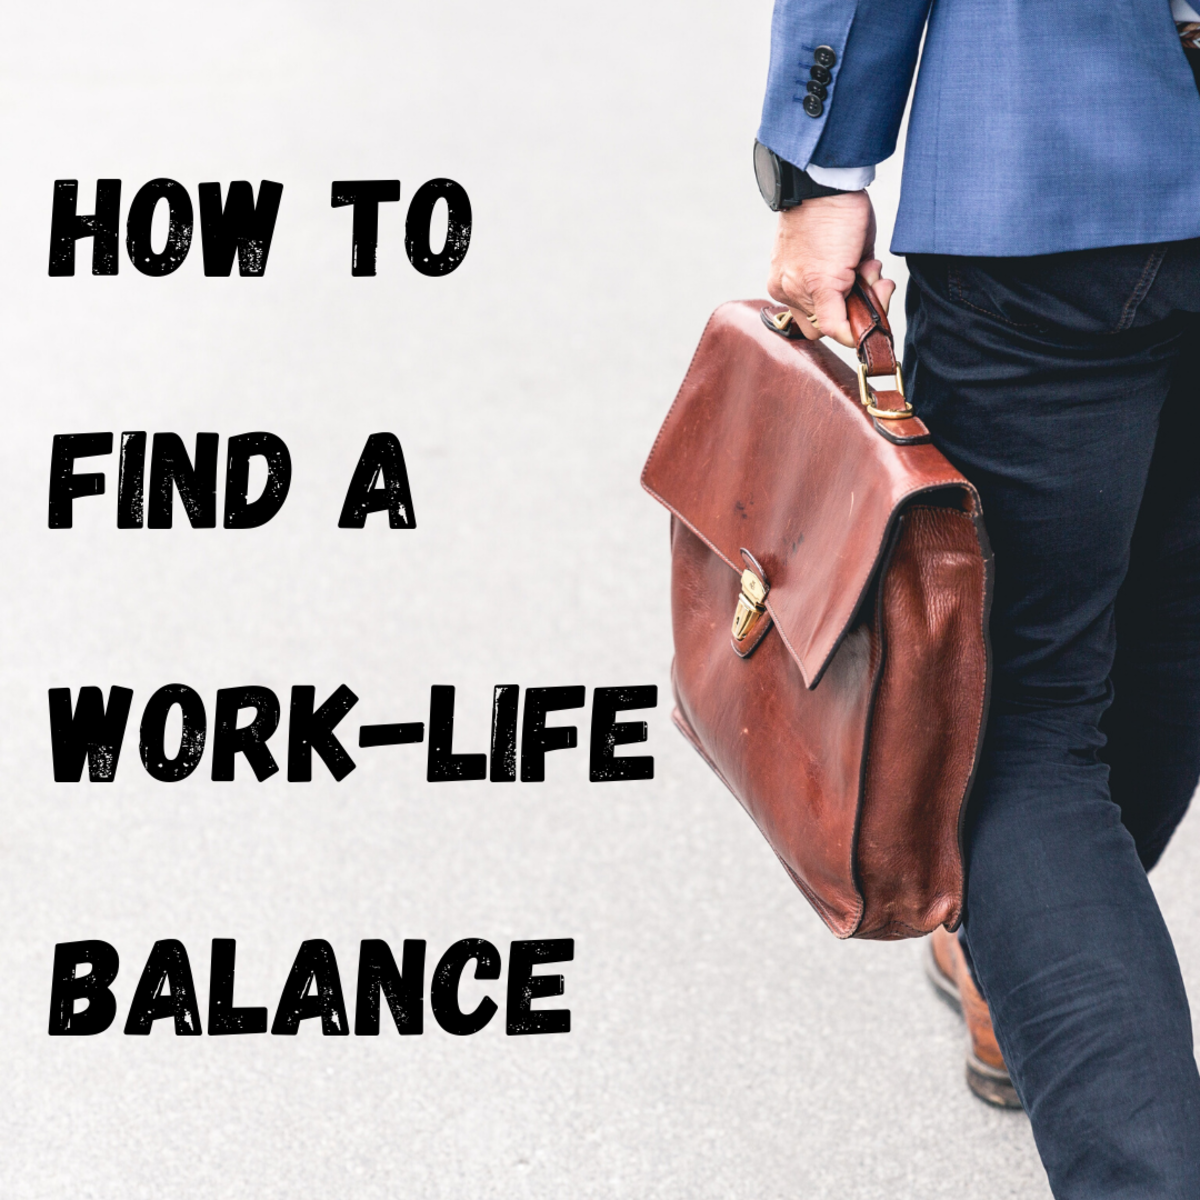 Finding a work-life balance can be difficult. Read on to learn how to live your best life.